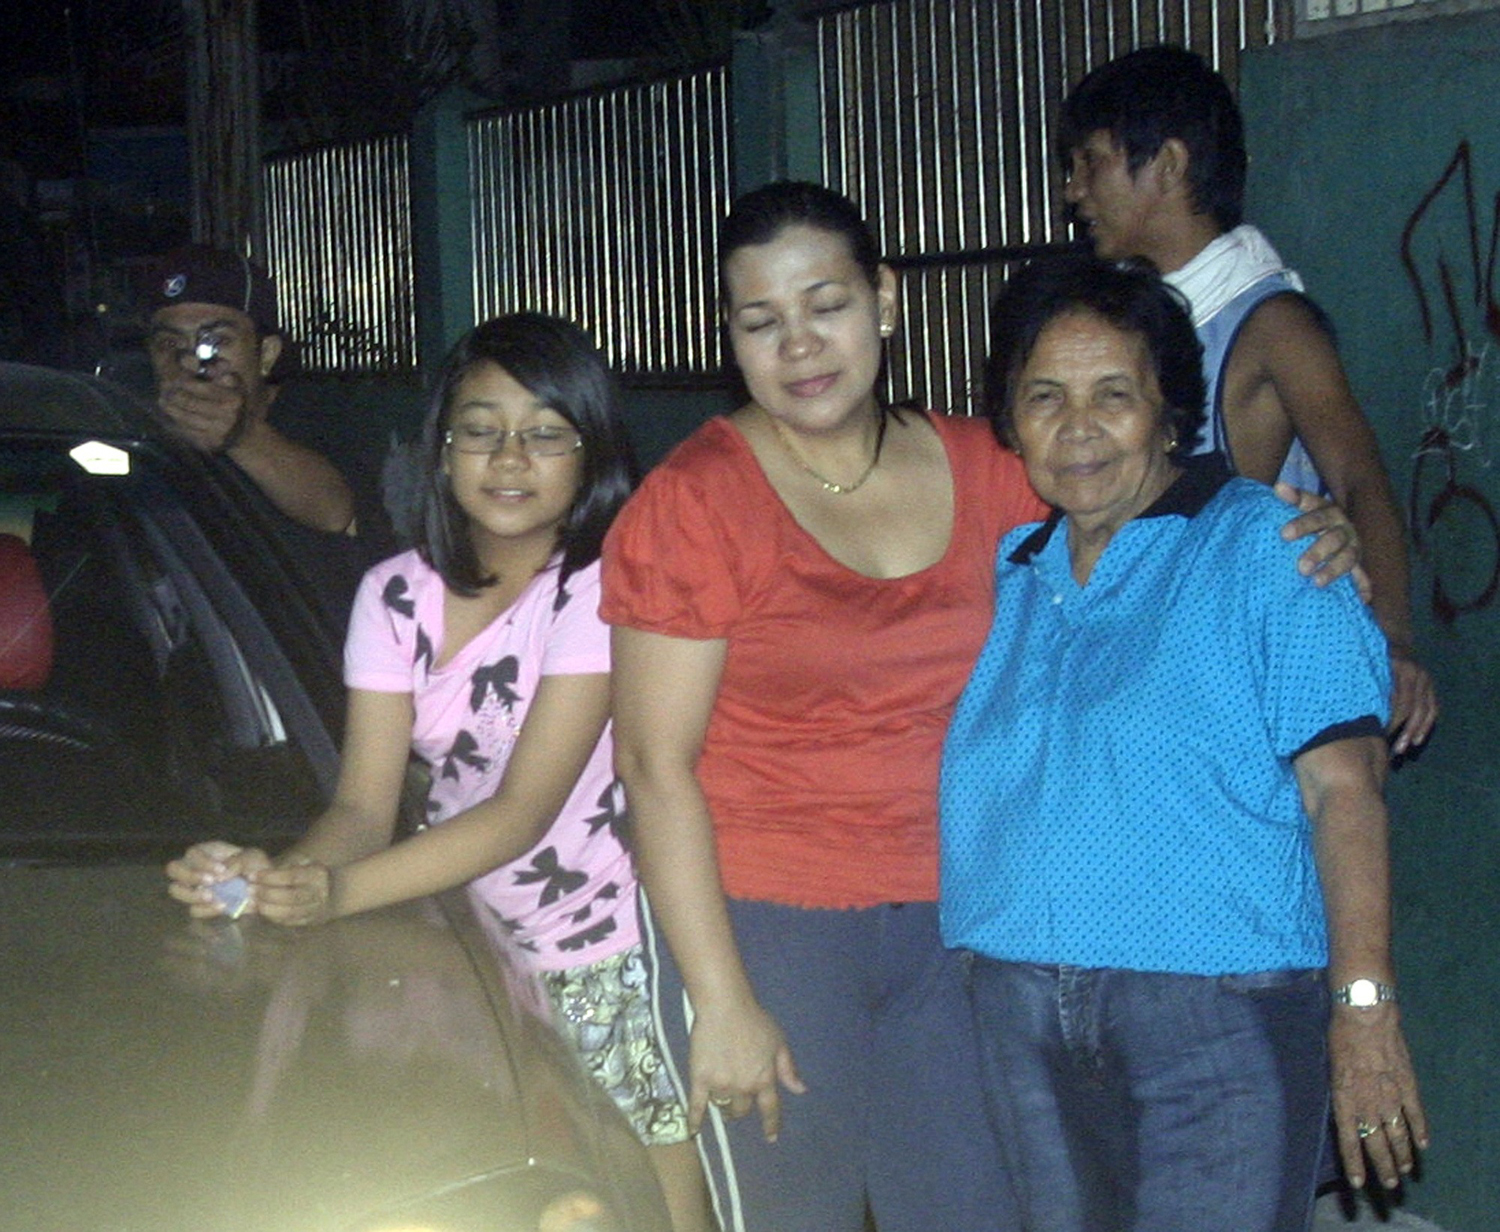 Seconds after taking this picture of his smiling family outside his Manila home, in the early hours of New Years day, councilman Reynaldo Dagsa was shot dead. The police did not have to look far for evidence of the killer's identity. The assassin and his accomplice had inadvertently been photographed in the background of the last image taken by the politician—his gun directly aimed at his victim—from behind a parked car, the barrel highlighted by the camera's flash.                                                              Amid the traditional exploding firecrackers Dagsa's relatives had not heard the gunshot that killed him-- they simply saw him collapse after he was hit. He was rushed to hospital but pronounced dead on arrival. Later when they looked at the photo he had taken of them, his family realized that the 35-year-old Dagsa had photographed his own murder in the act.                                                              The photograph, taken just after midnight on 1 January, was released by Dagsa's family on 4 January. It was published on the front page of The Philippine Daily Inquirer and then quickly went viral. The picture also led to the arrest of two suspects, gunman Michael Gonzales and accomplice Rommel Olivia.